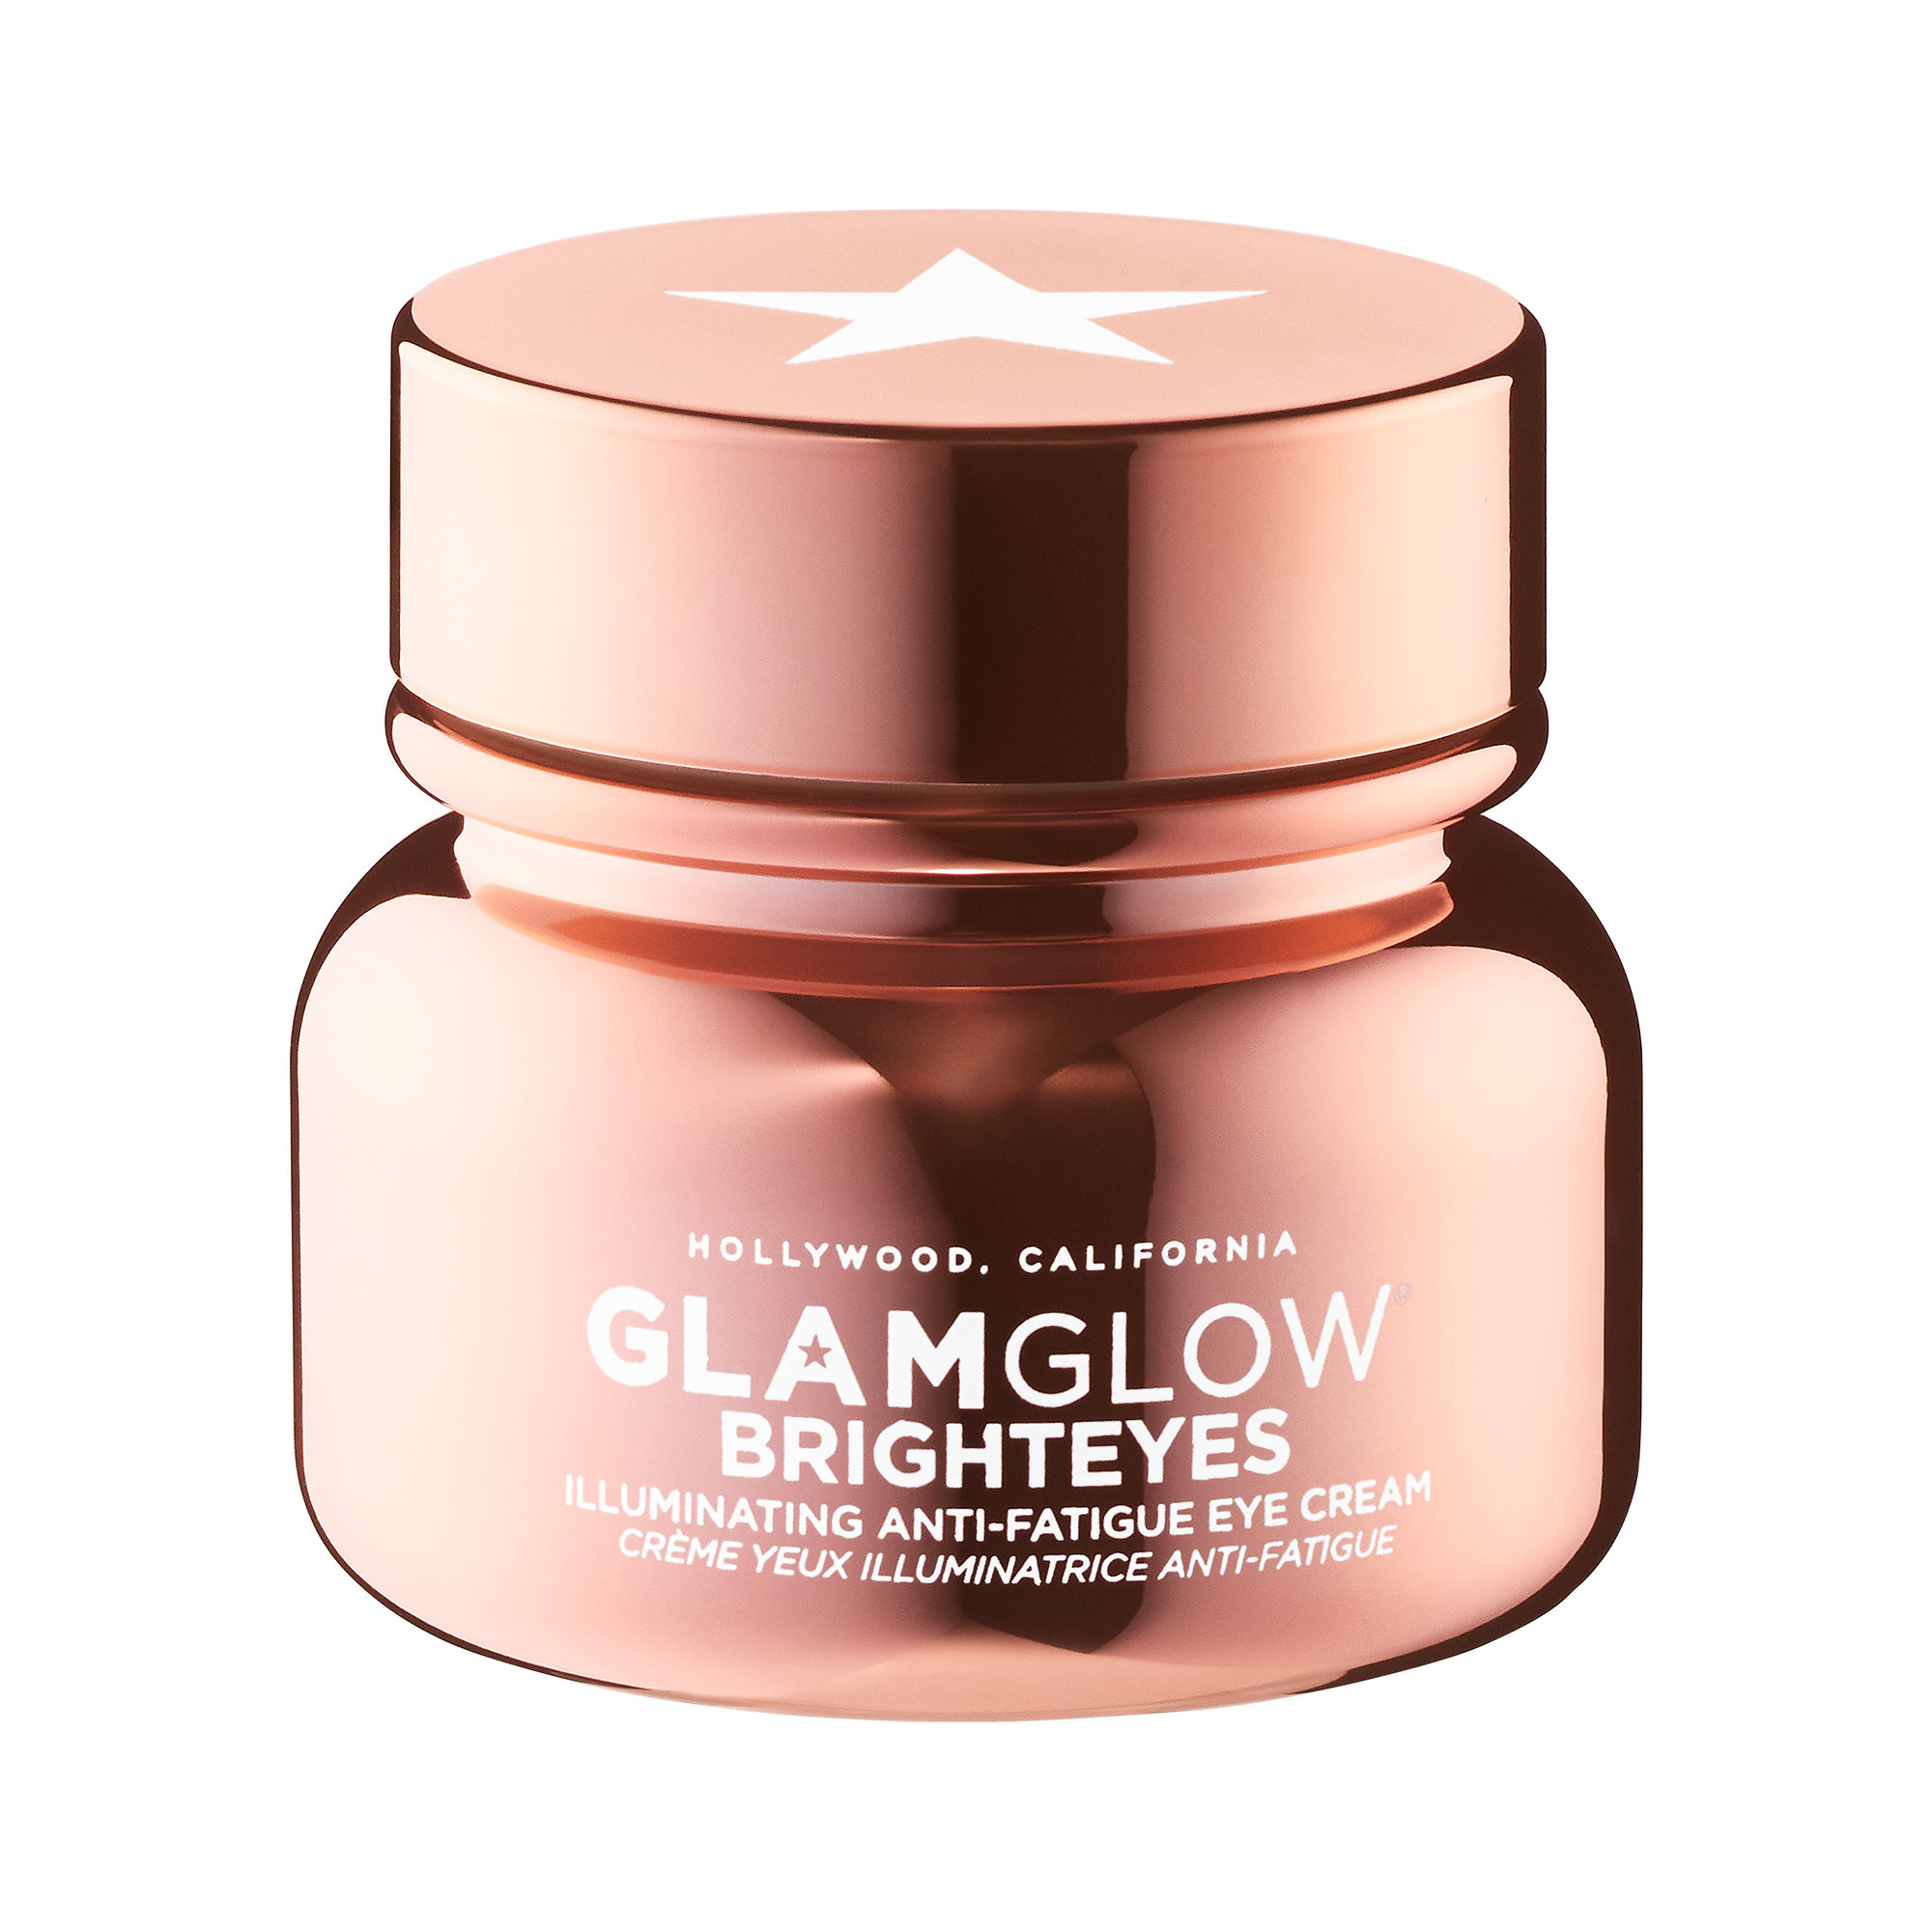 Glamglow - BRIGHTEYES™ Illuminating Anti-Fatigue Eye Cream